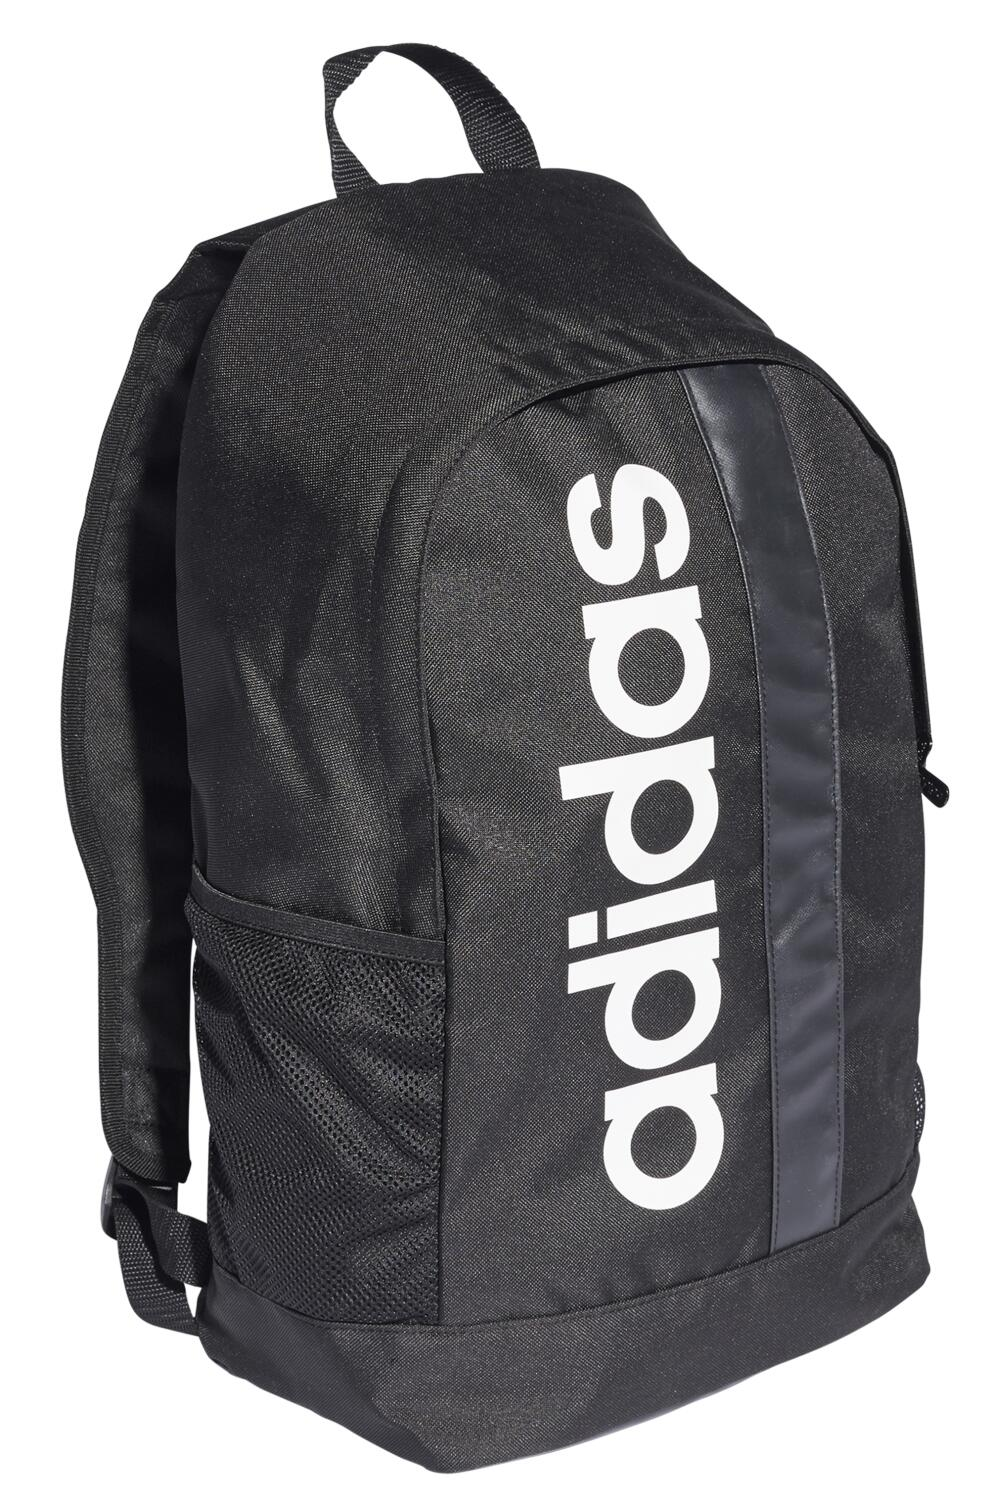 Image of adidas Linear Core Rucksack ( black/black/white)